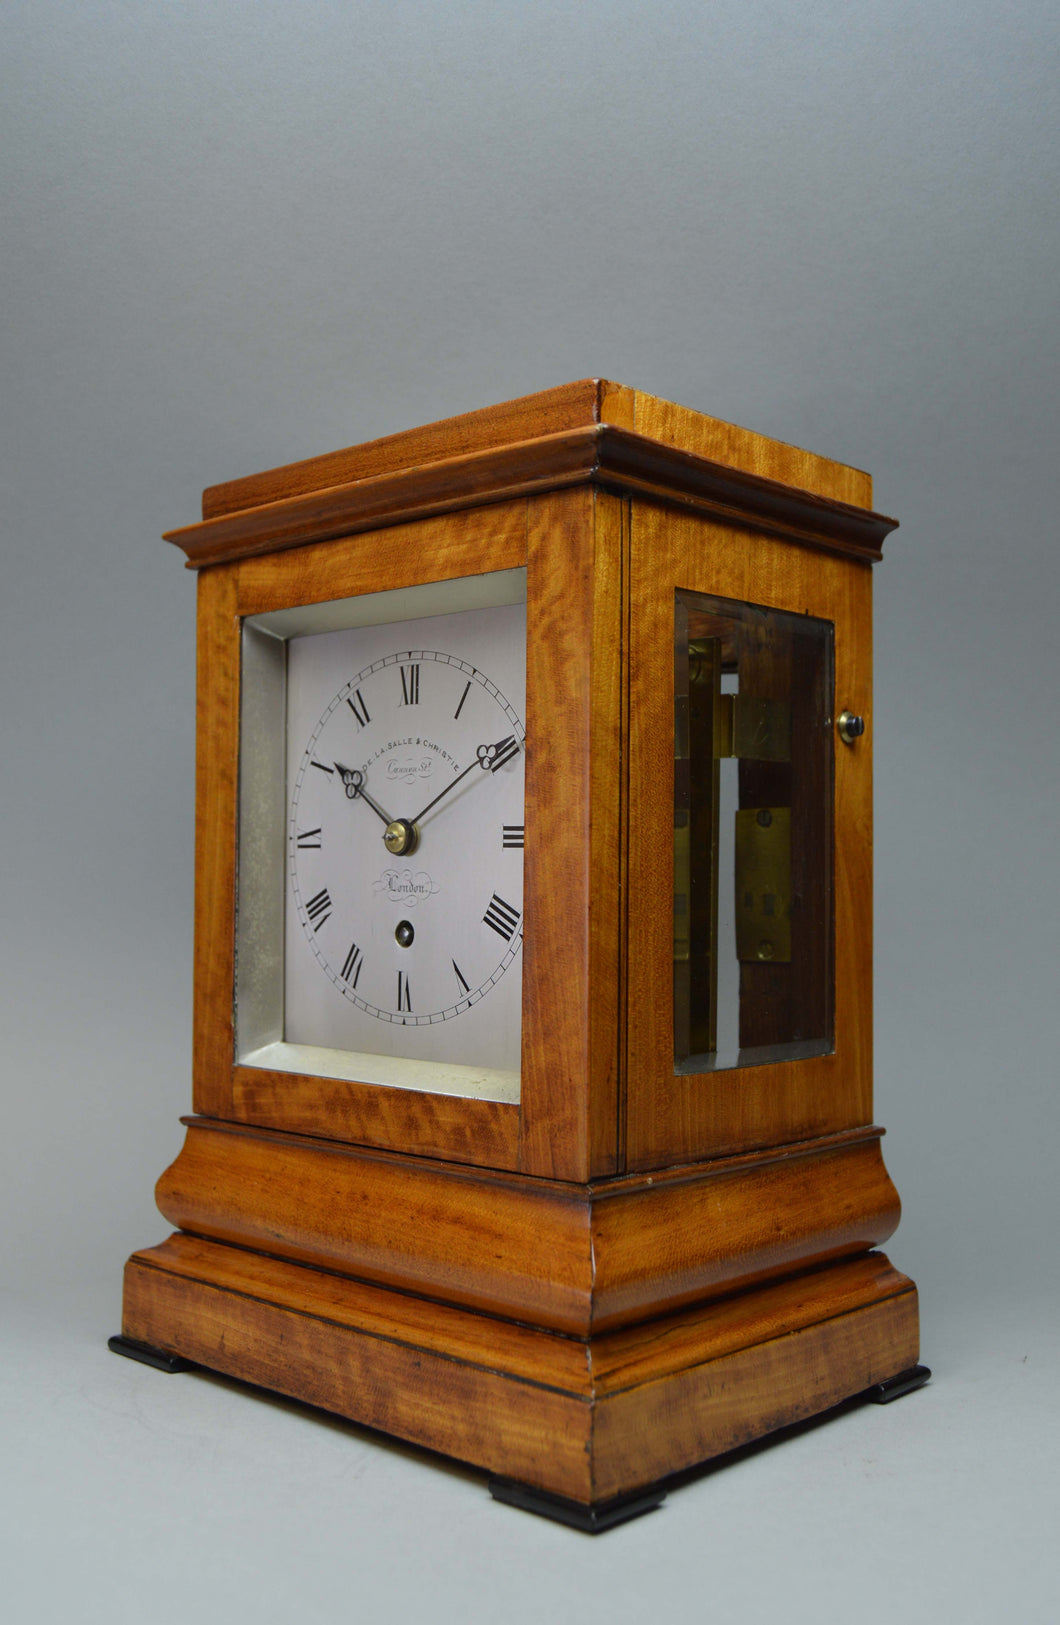 Exquisite small library timepiece in very fine Satinwood case. - SOLD